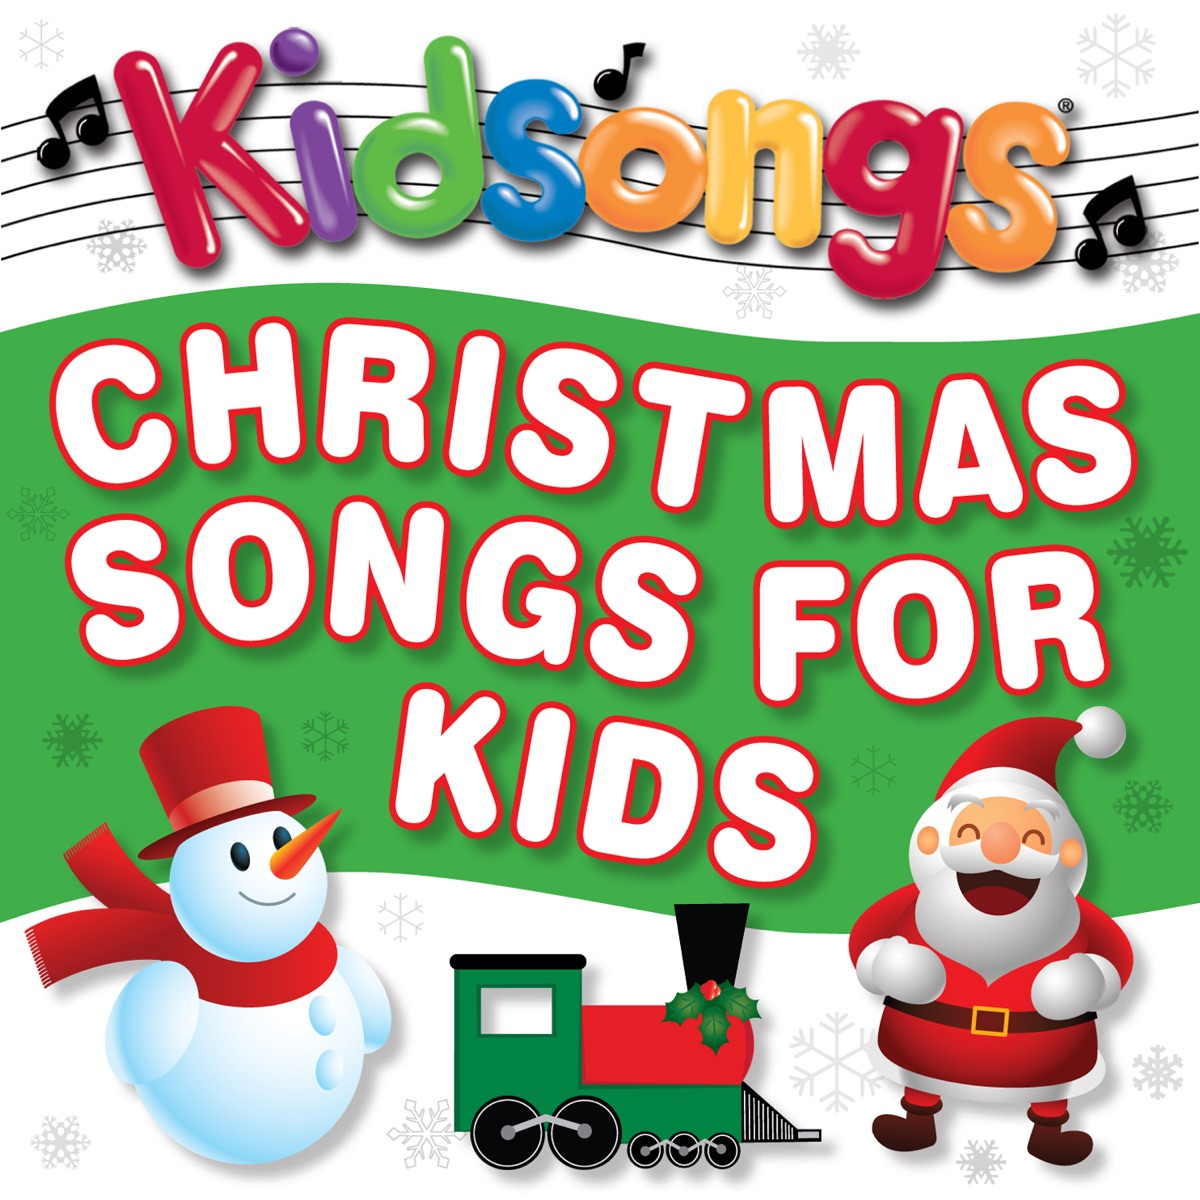 Christmas Songs for Kids Album Cover by Kidsongs